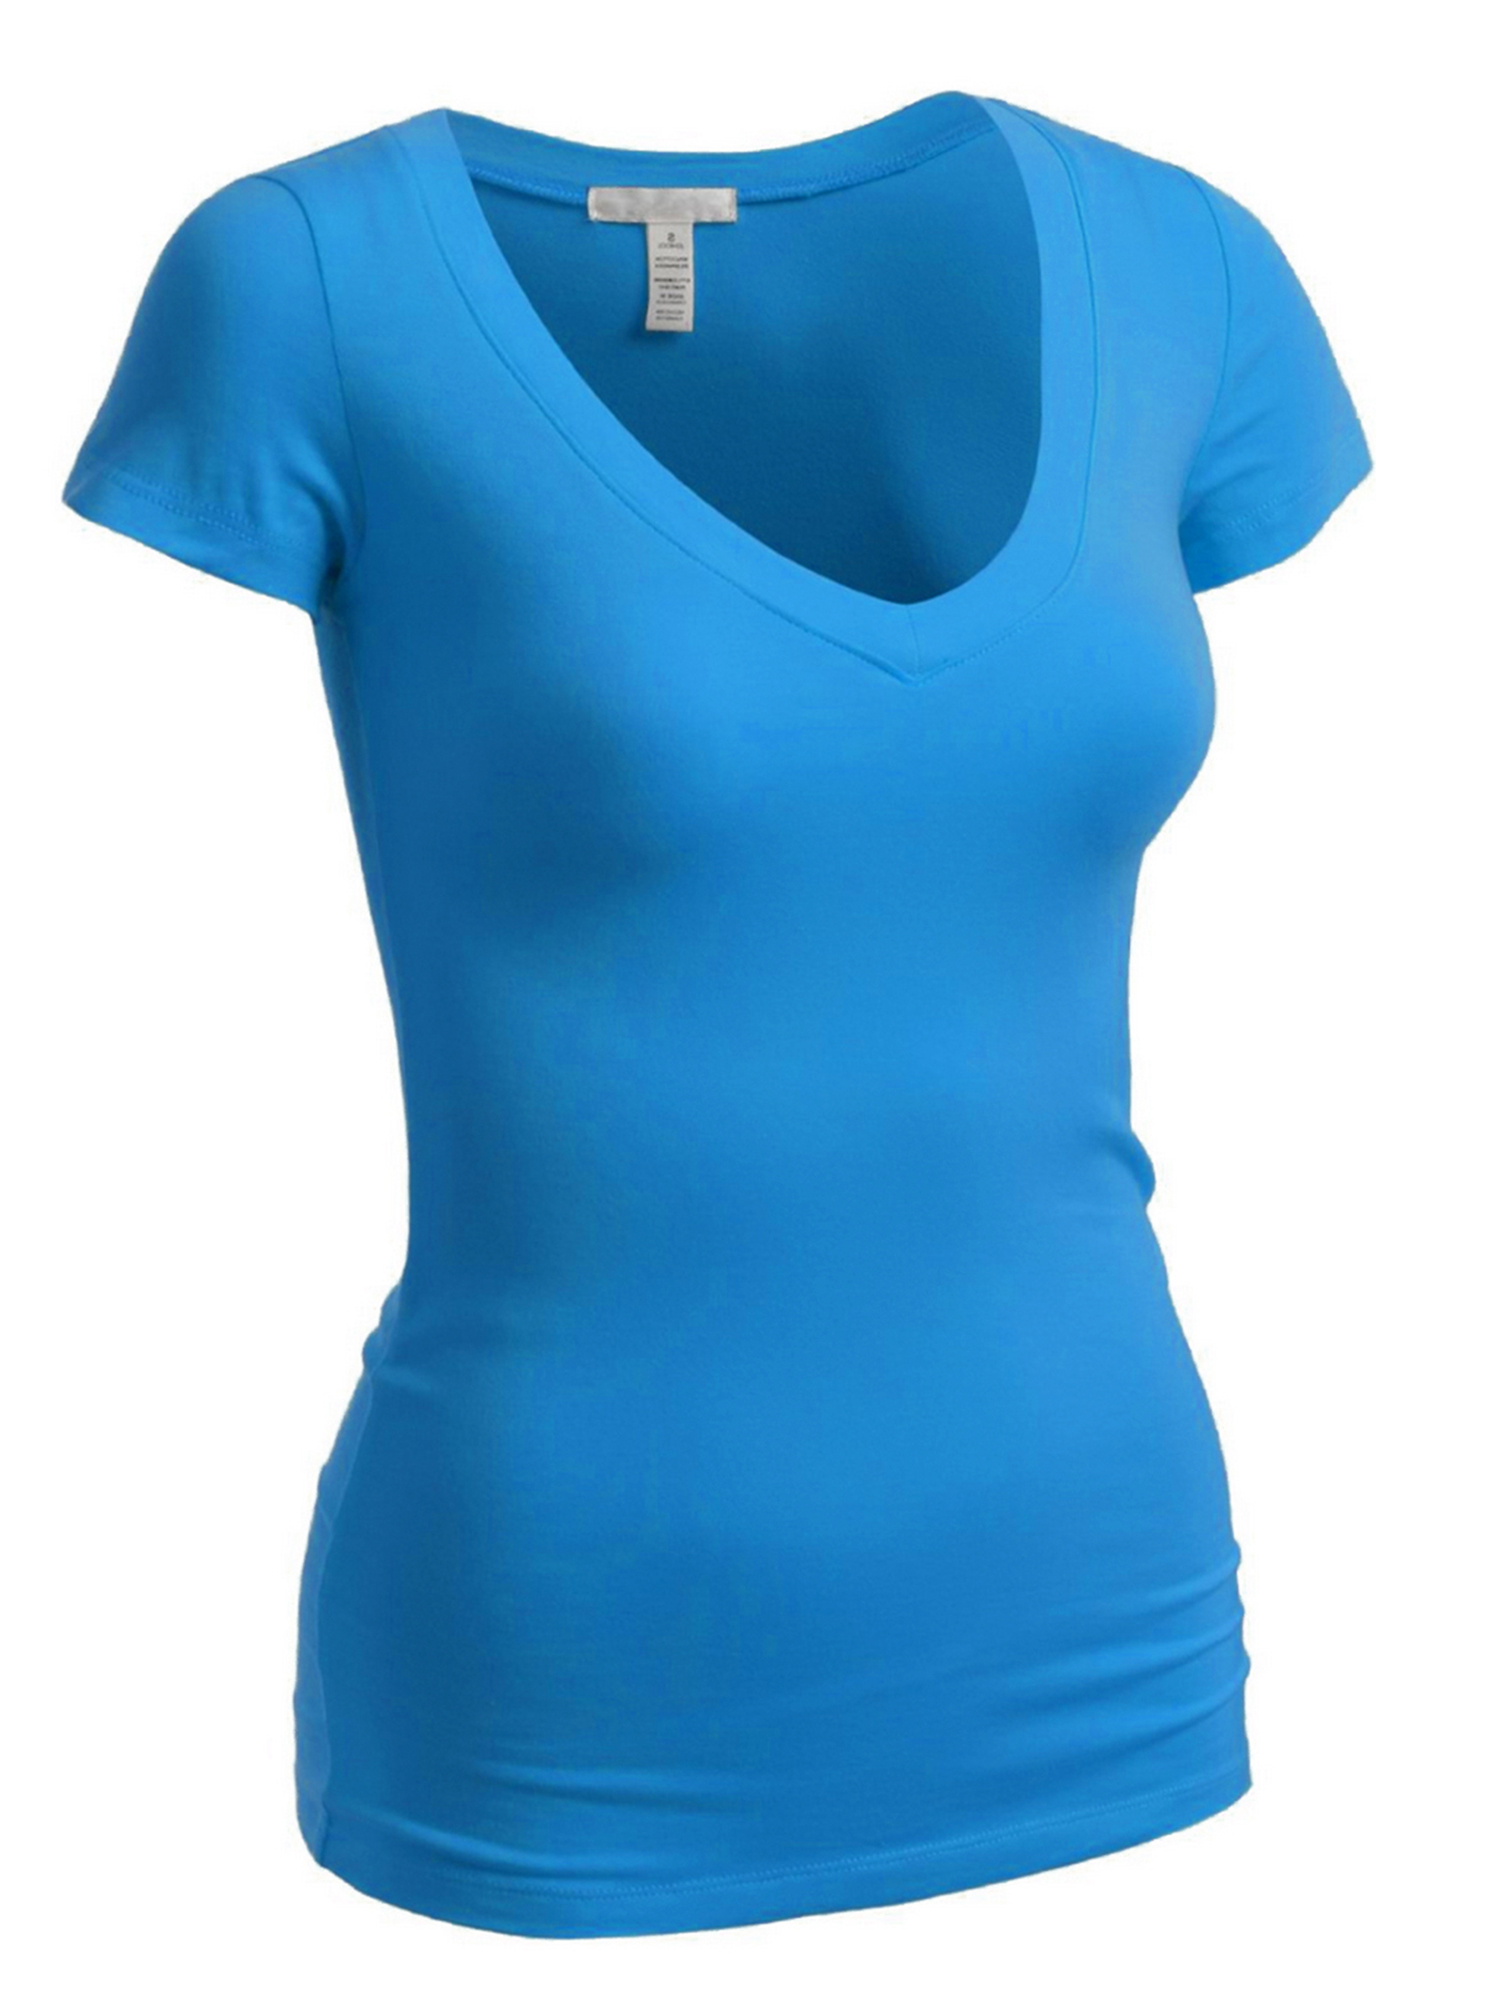 Emmalise Women's Plain Short Sleeve T-Shirt V-Neck Top Junior & Plus Sizes